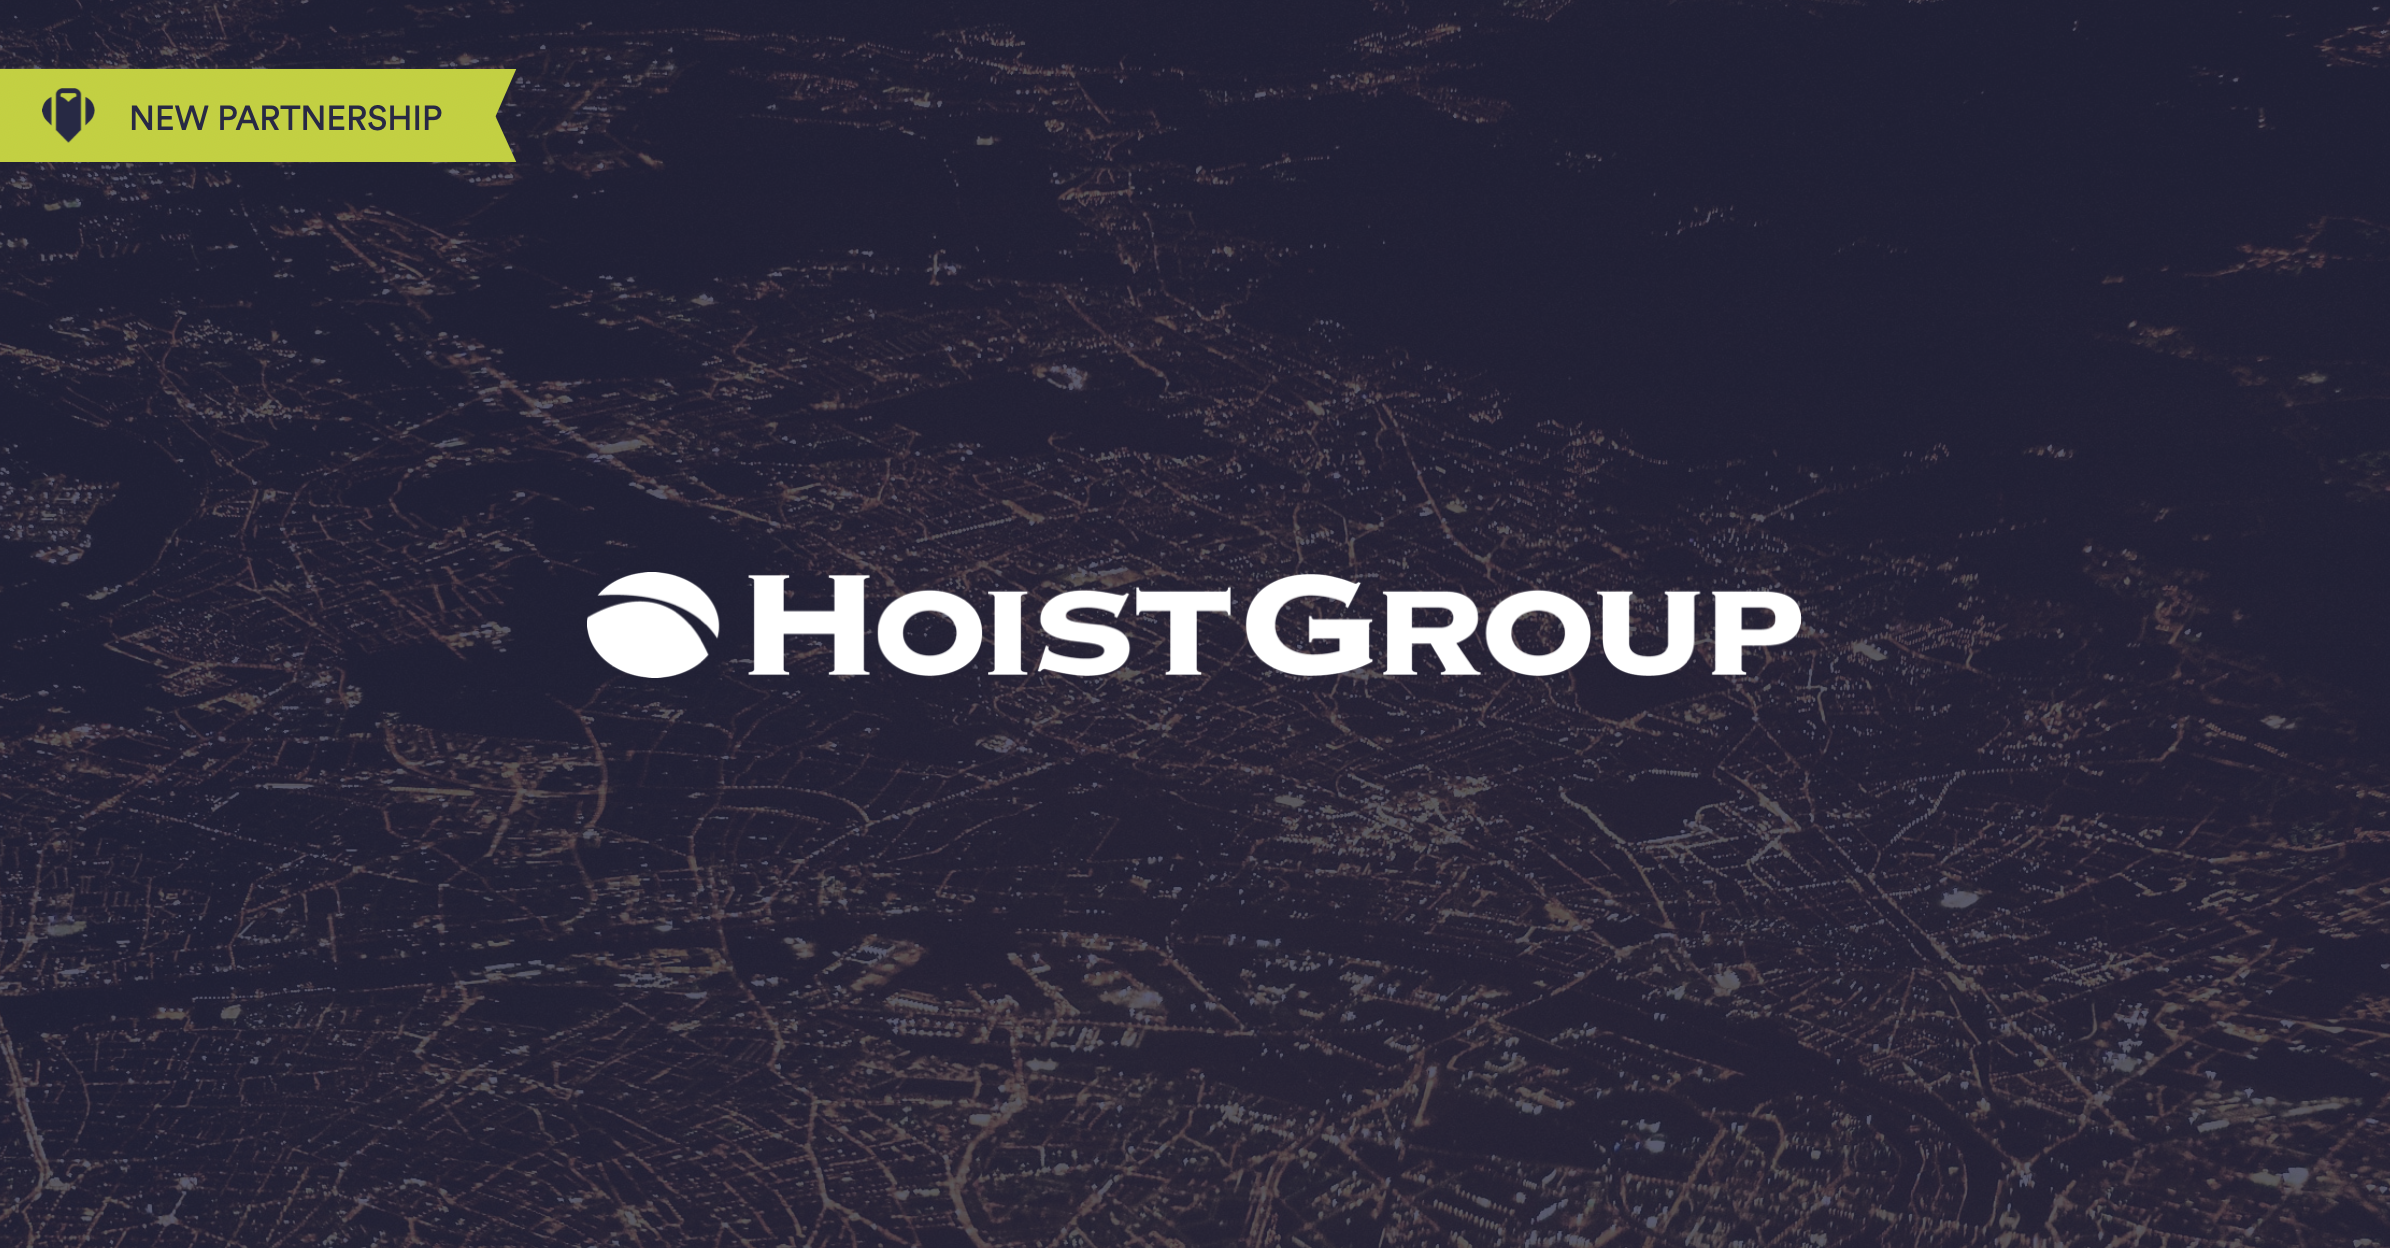 Hoist Group Partnership